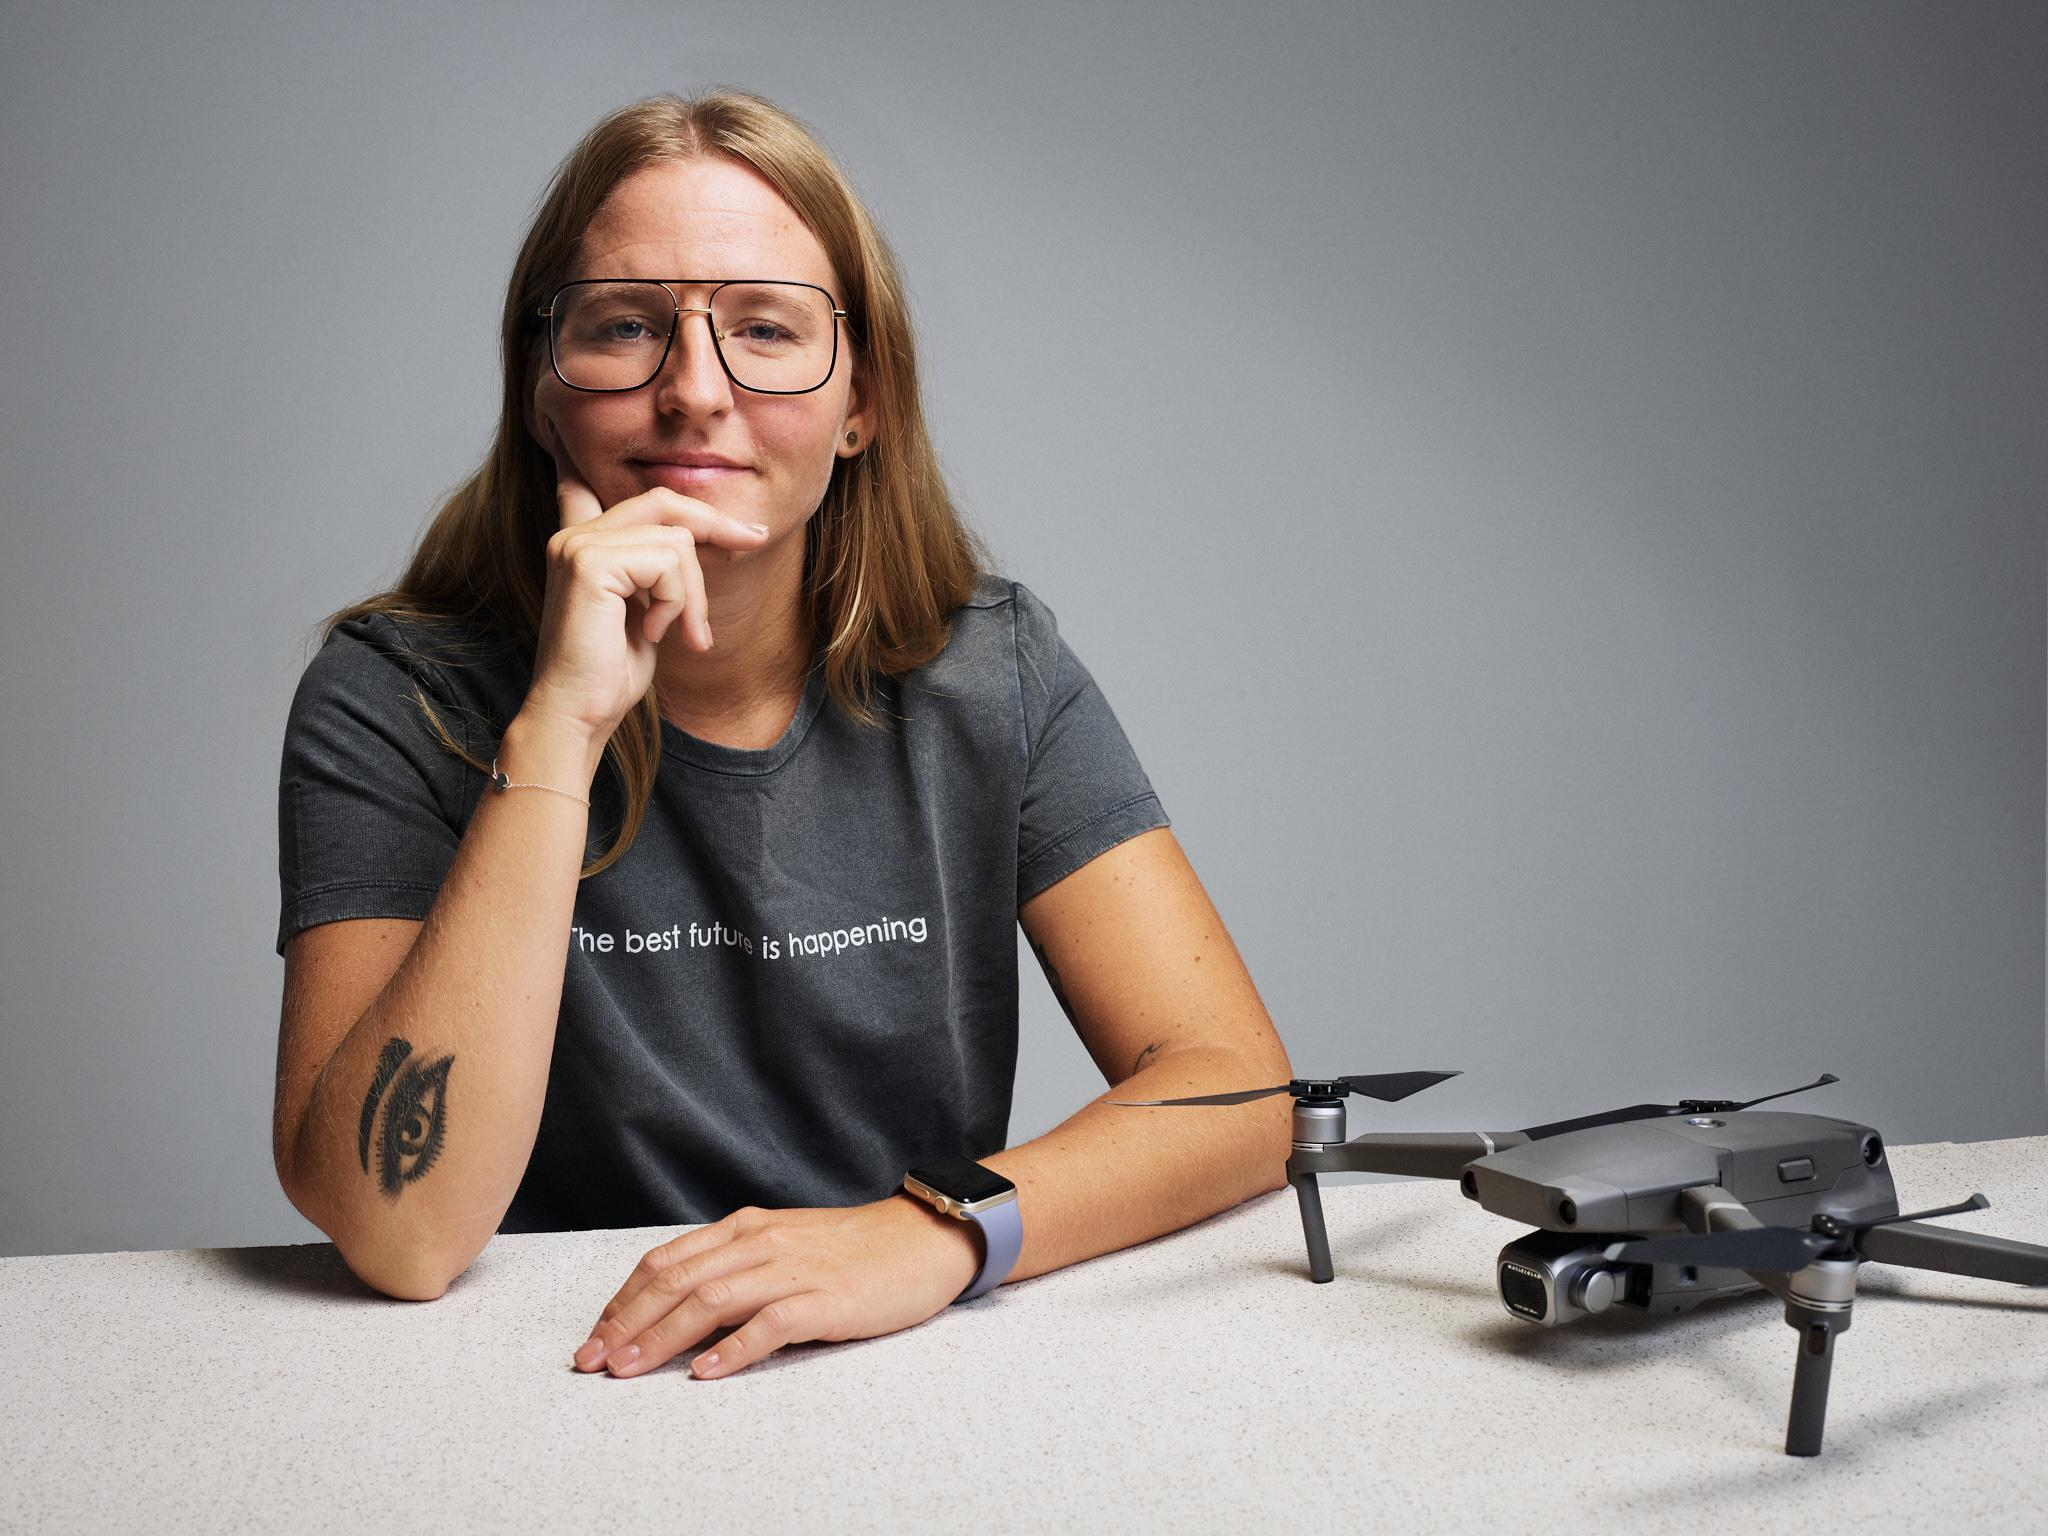 Portrait of Helena Samsioe with a drone on the table in front of her.